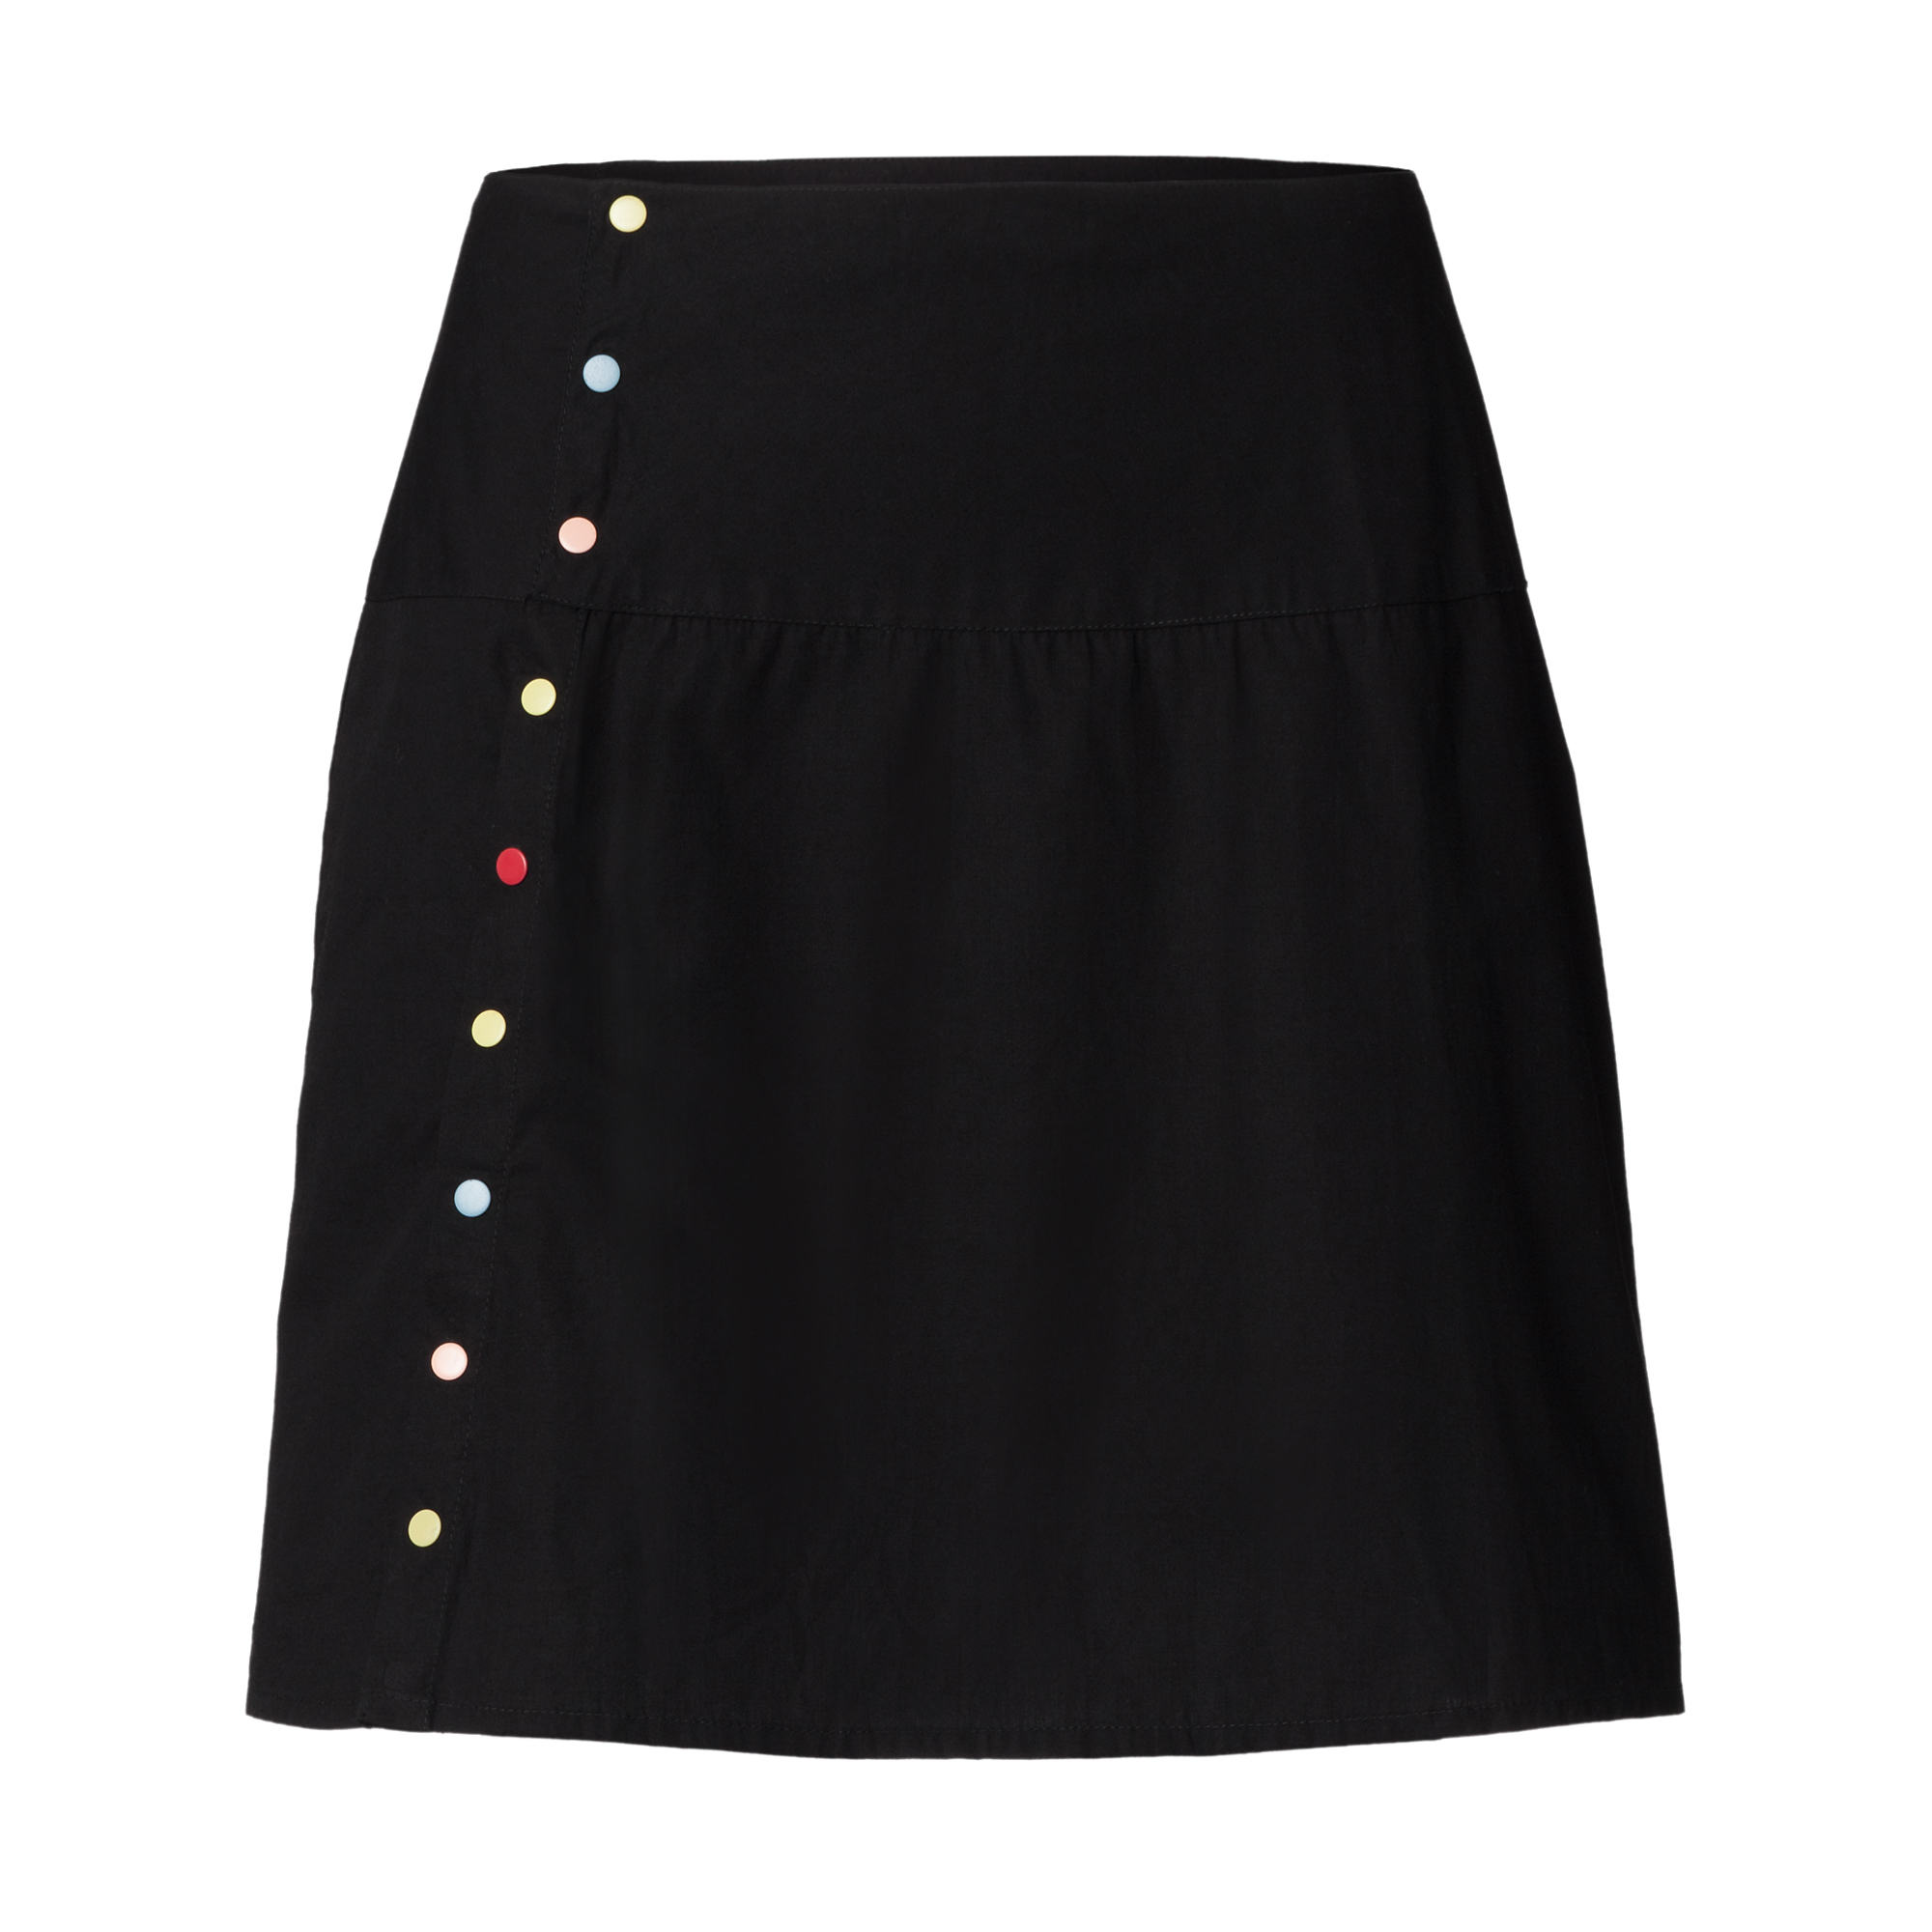 TT59 Skirt Woman Black Bio & Fair